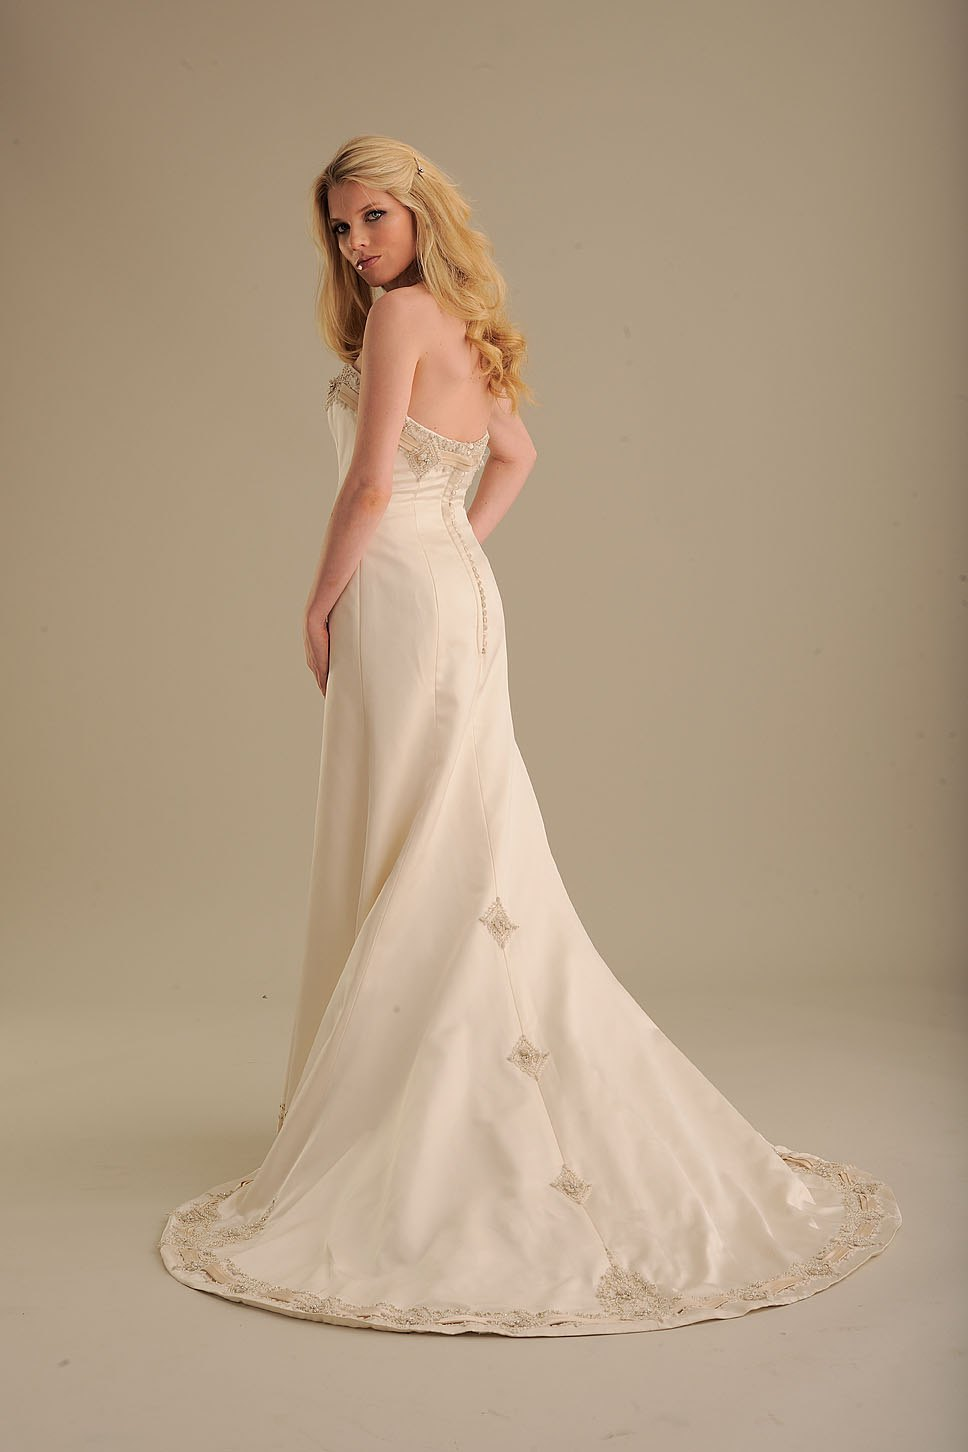 836 image for No back wedding dress